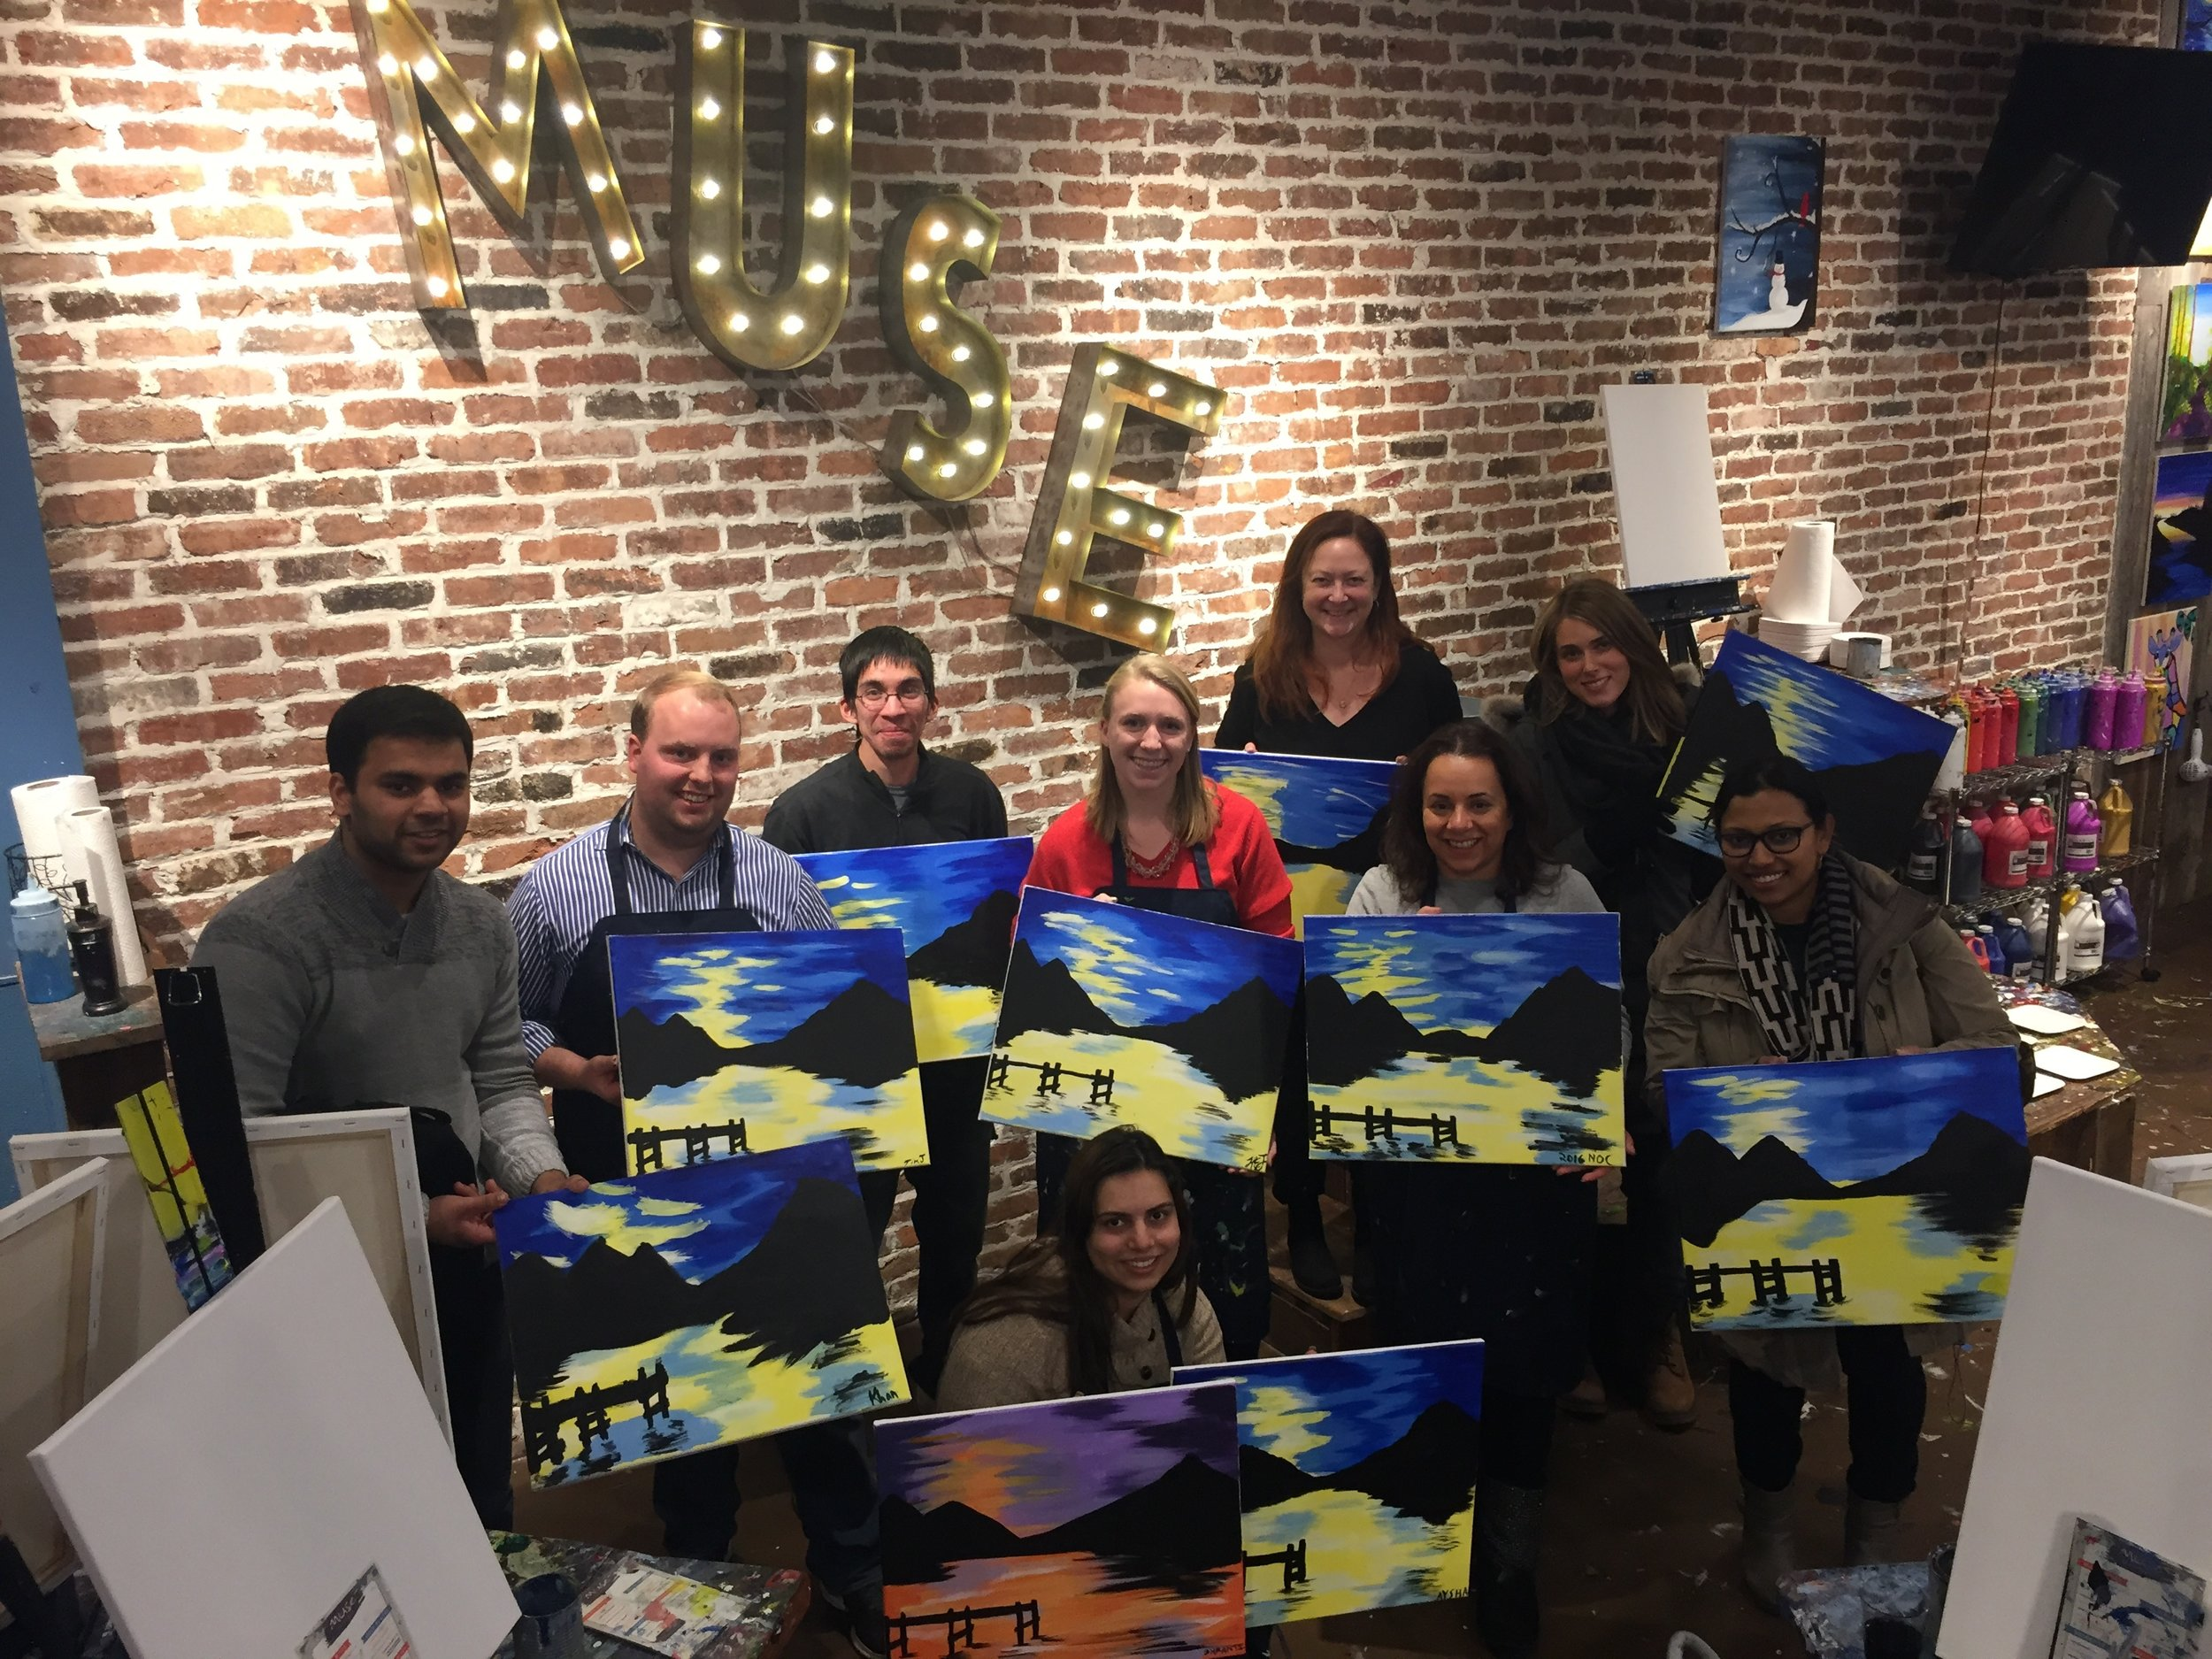 Lab outing: paint night